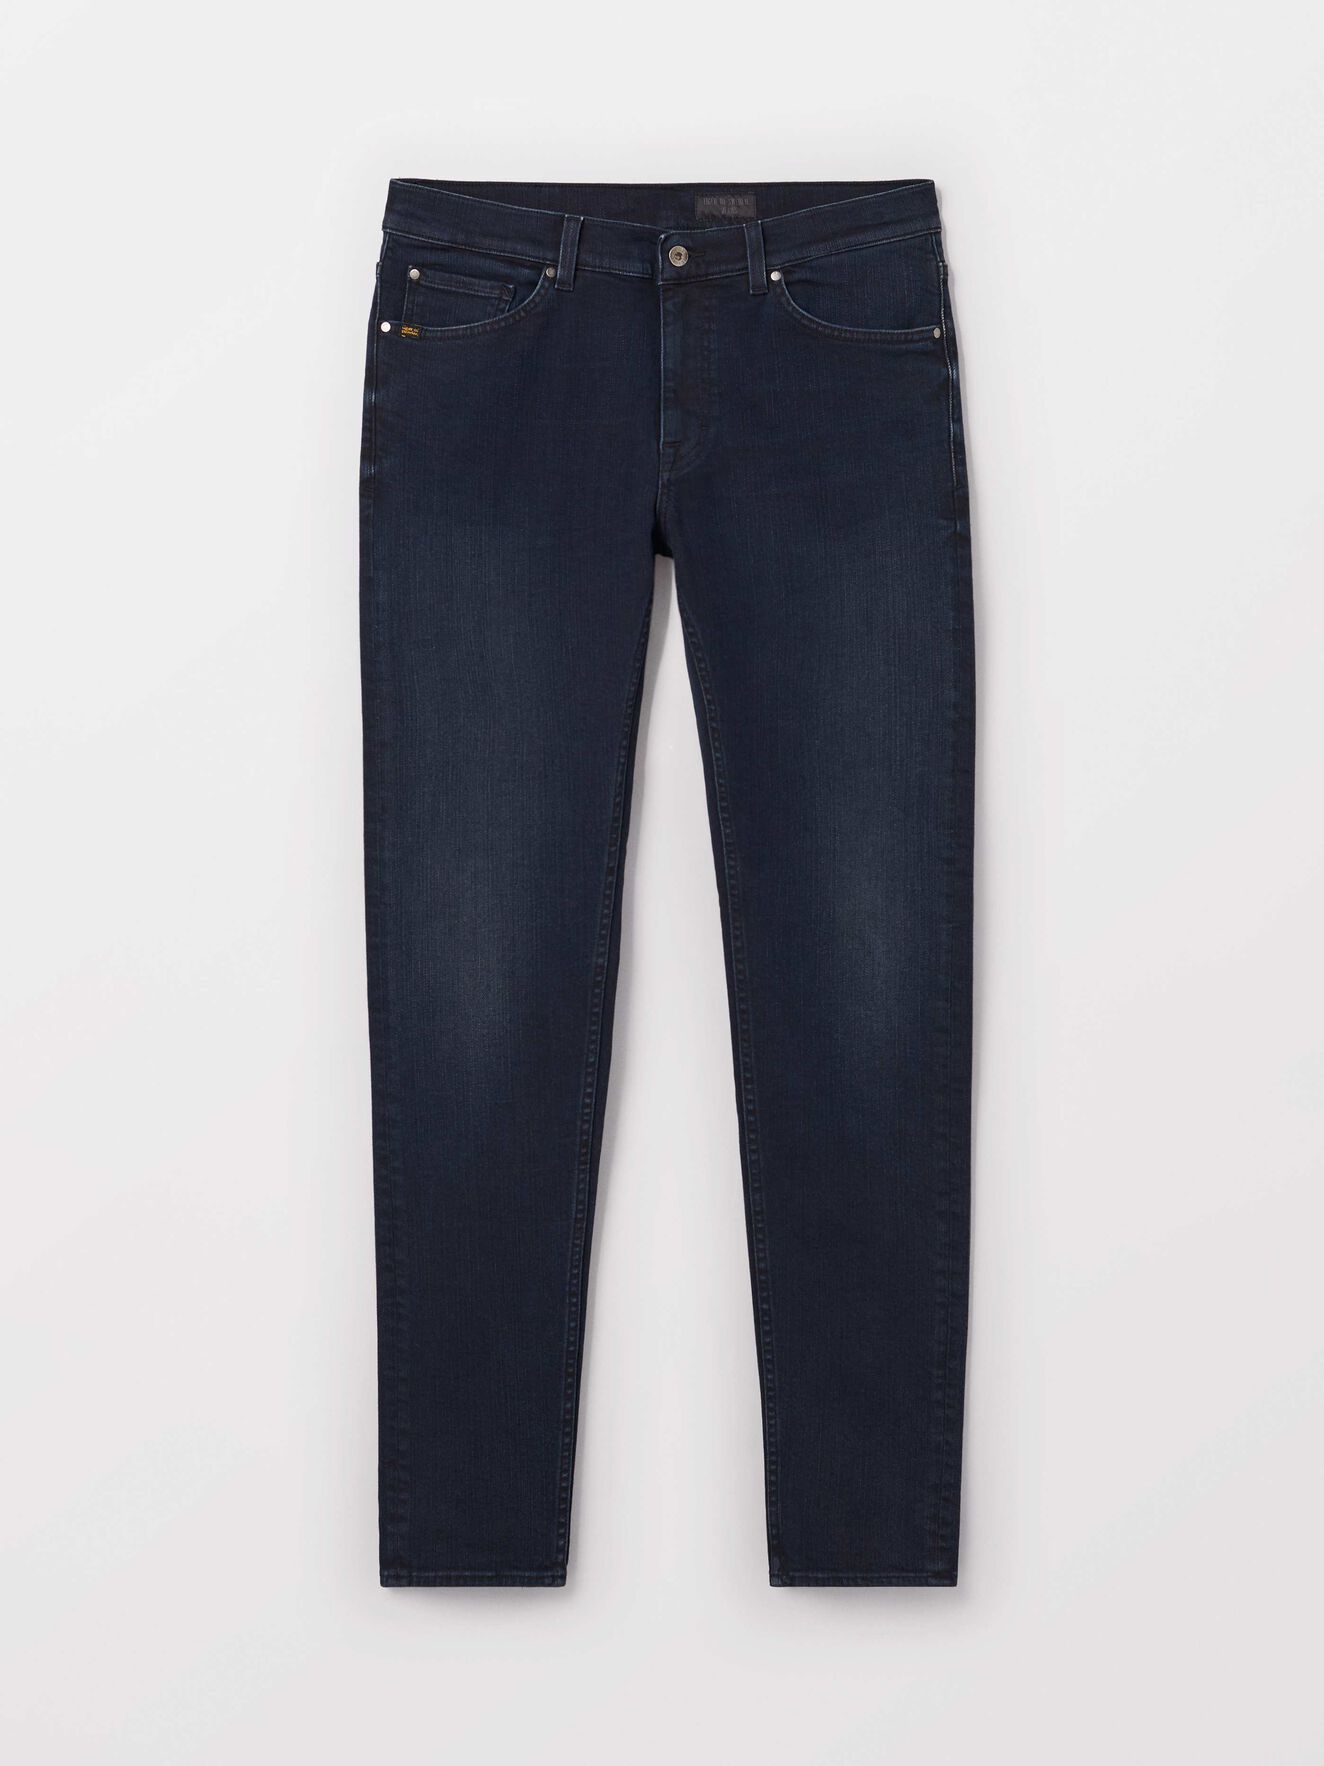 e95331f8d Jeans - Shop men s jeans online at Tiger of Sweden